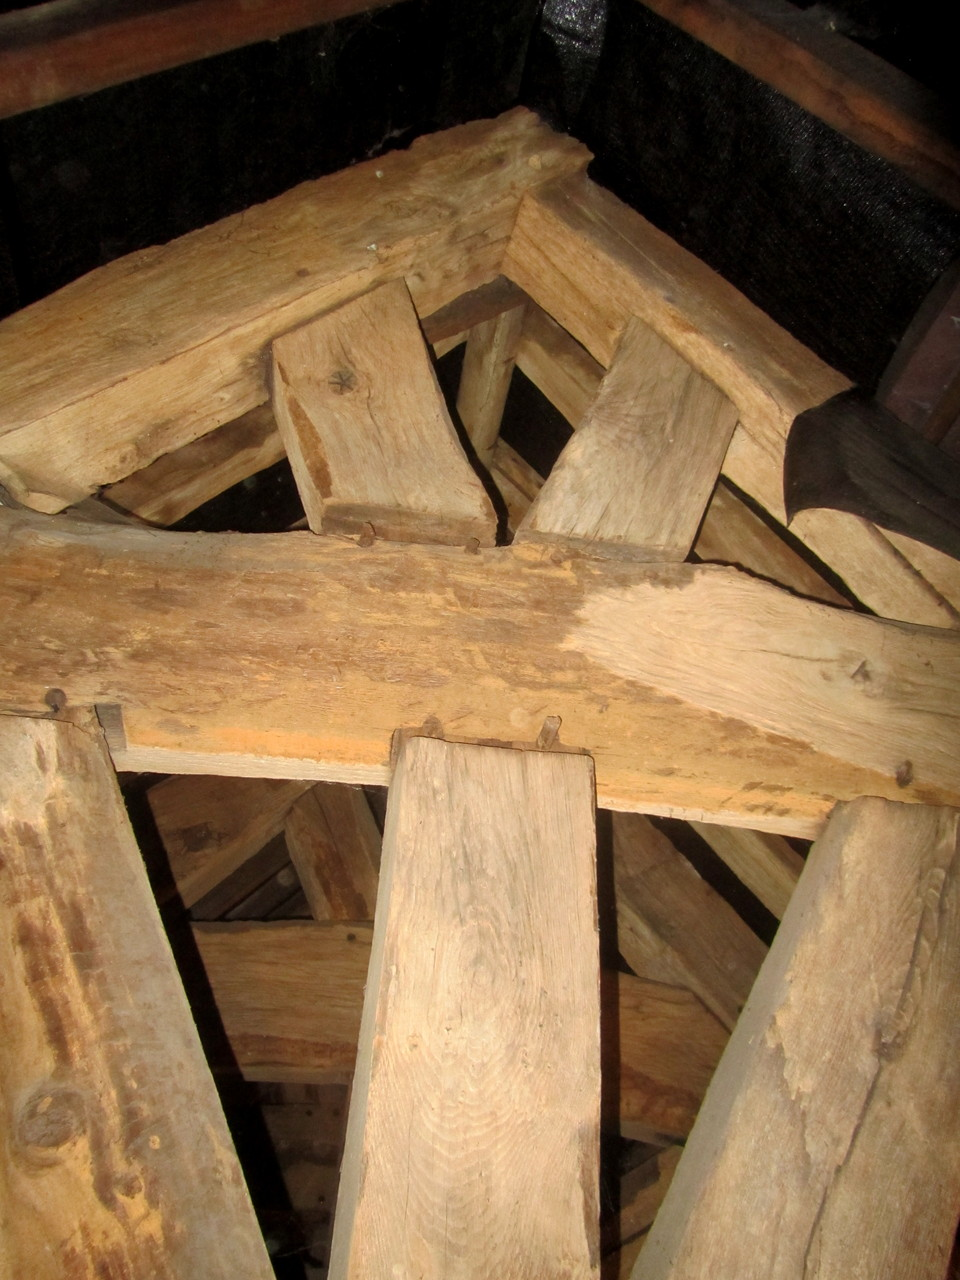 Extra strenghtening on the beams show where a bellcote was in the Middle Ages.